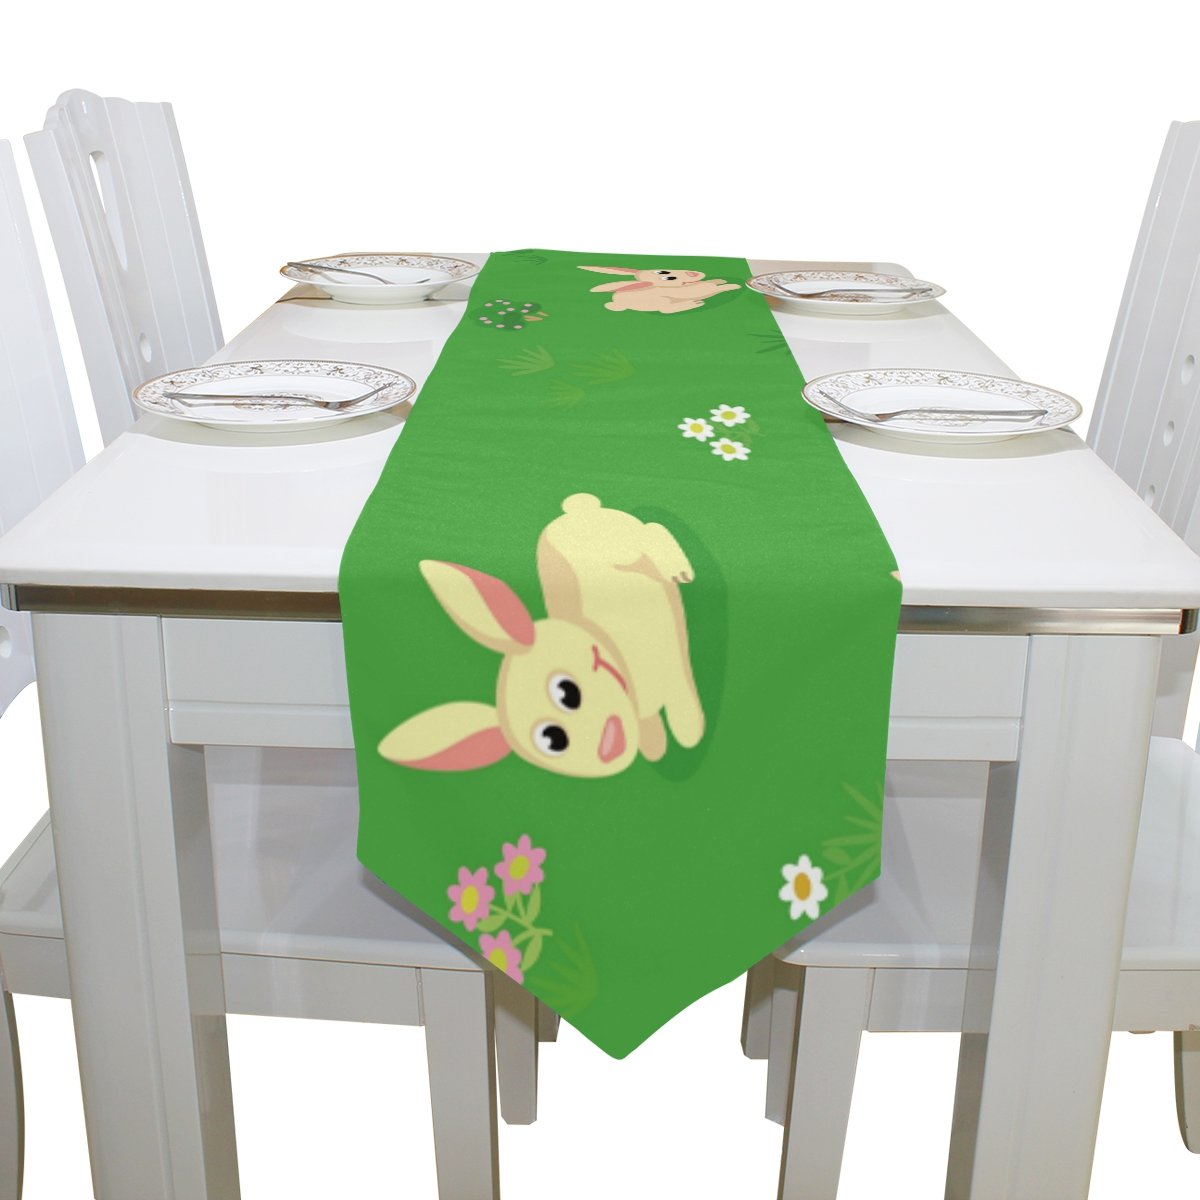 ALAZA Easter Rabbit Collection Table Runner For Dinner Parties, Valentine's Day Decor Country Holiday Birthday Wedding Party 13 x 90 inch by INGBAGS (Image #2)